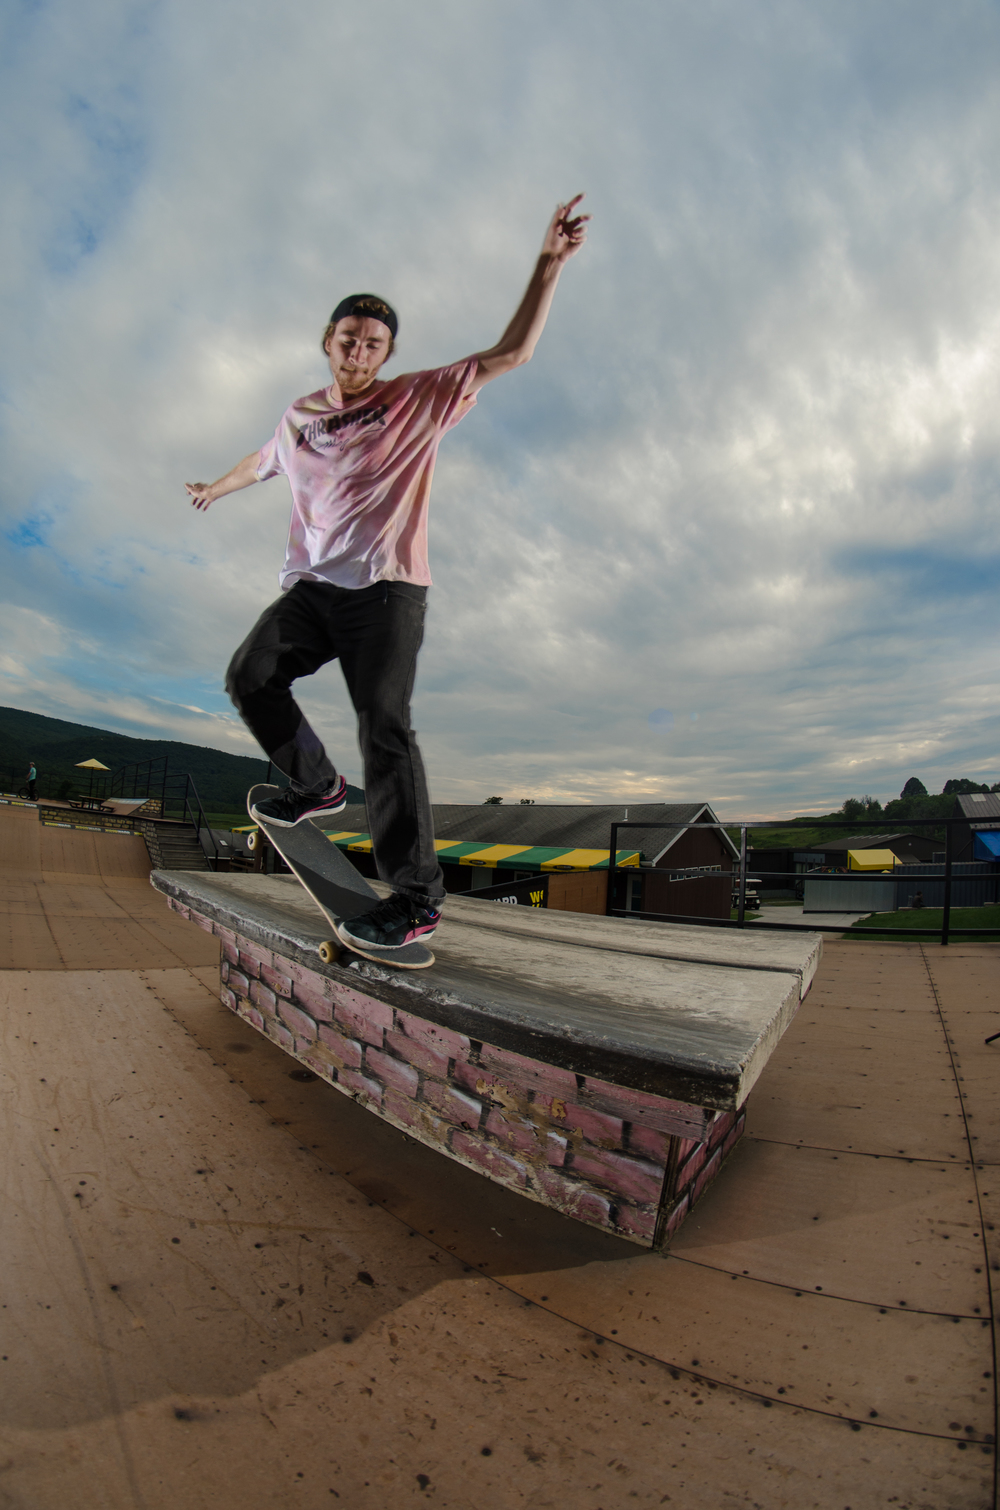 James_Britton_wk3_sk8_2015_BDS_22.JPG